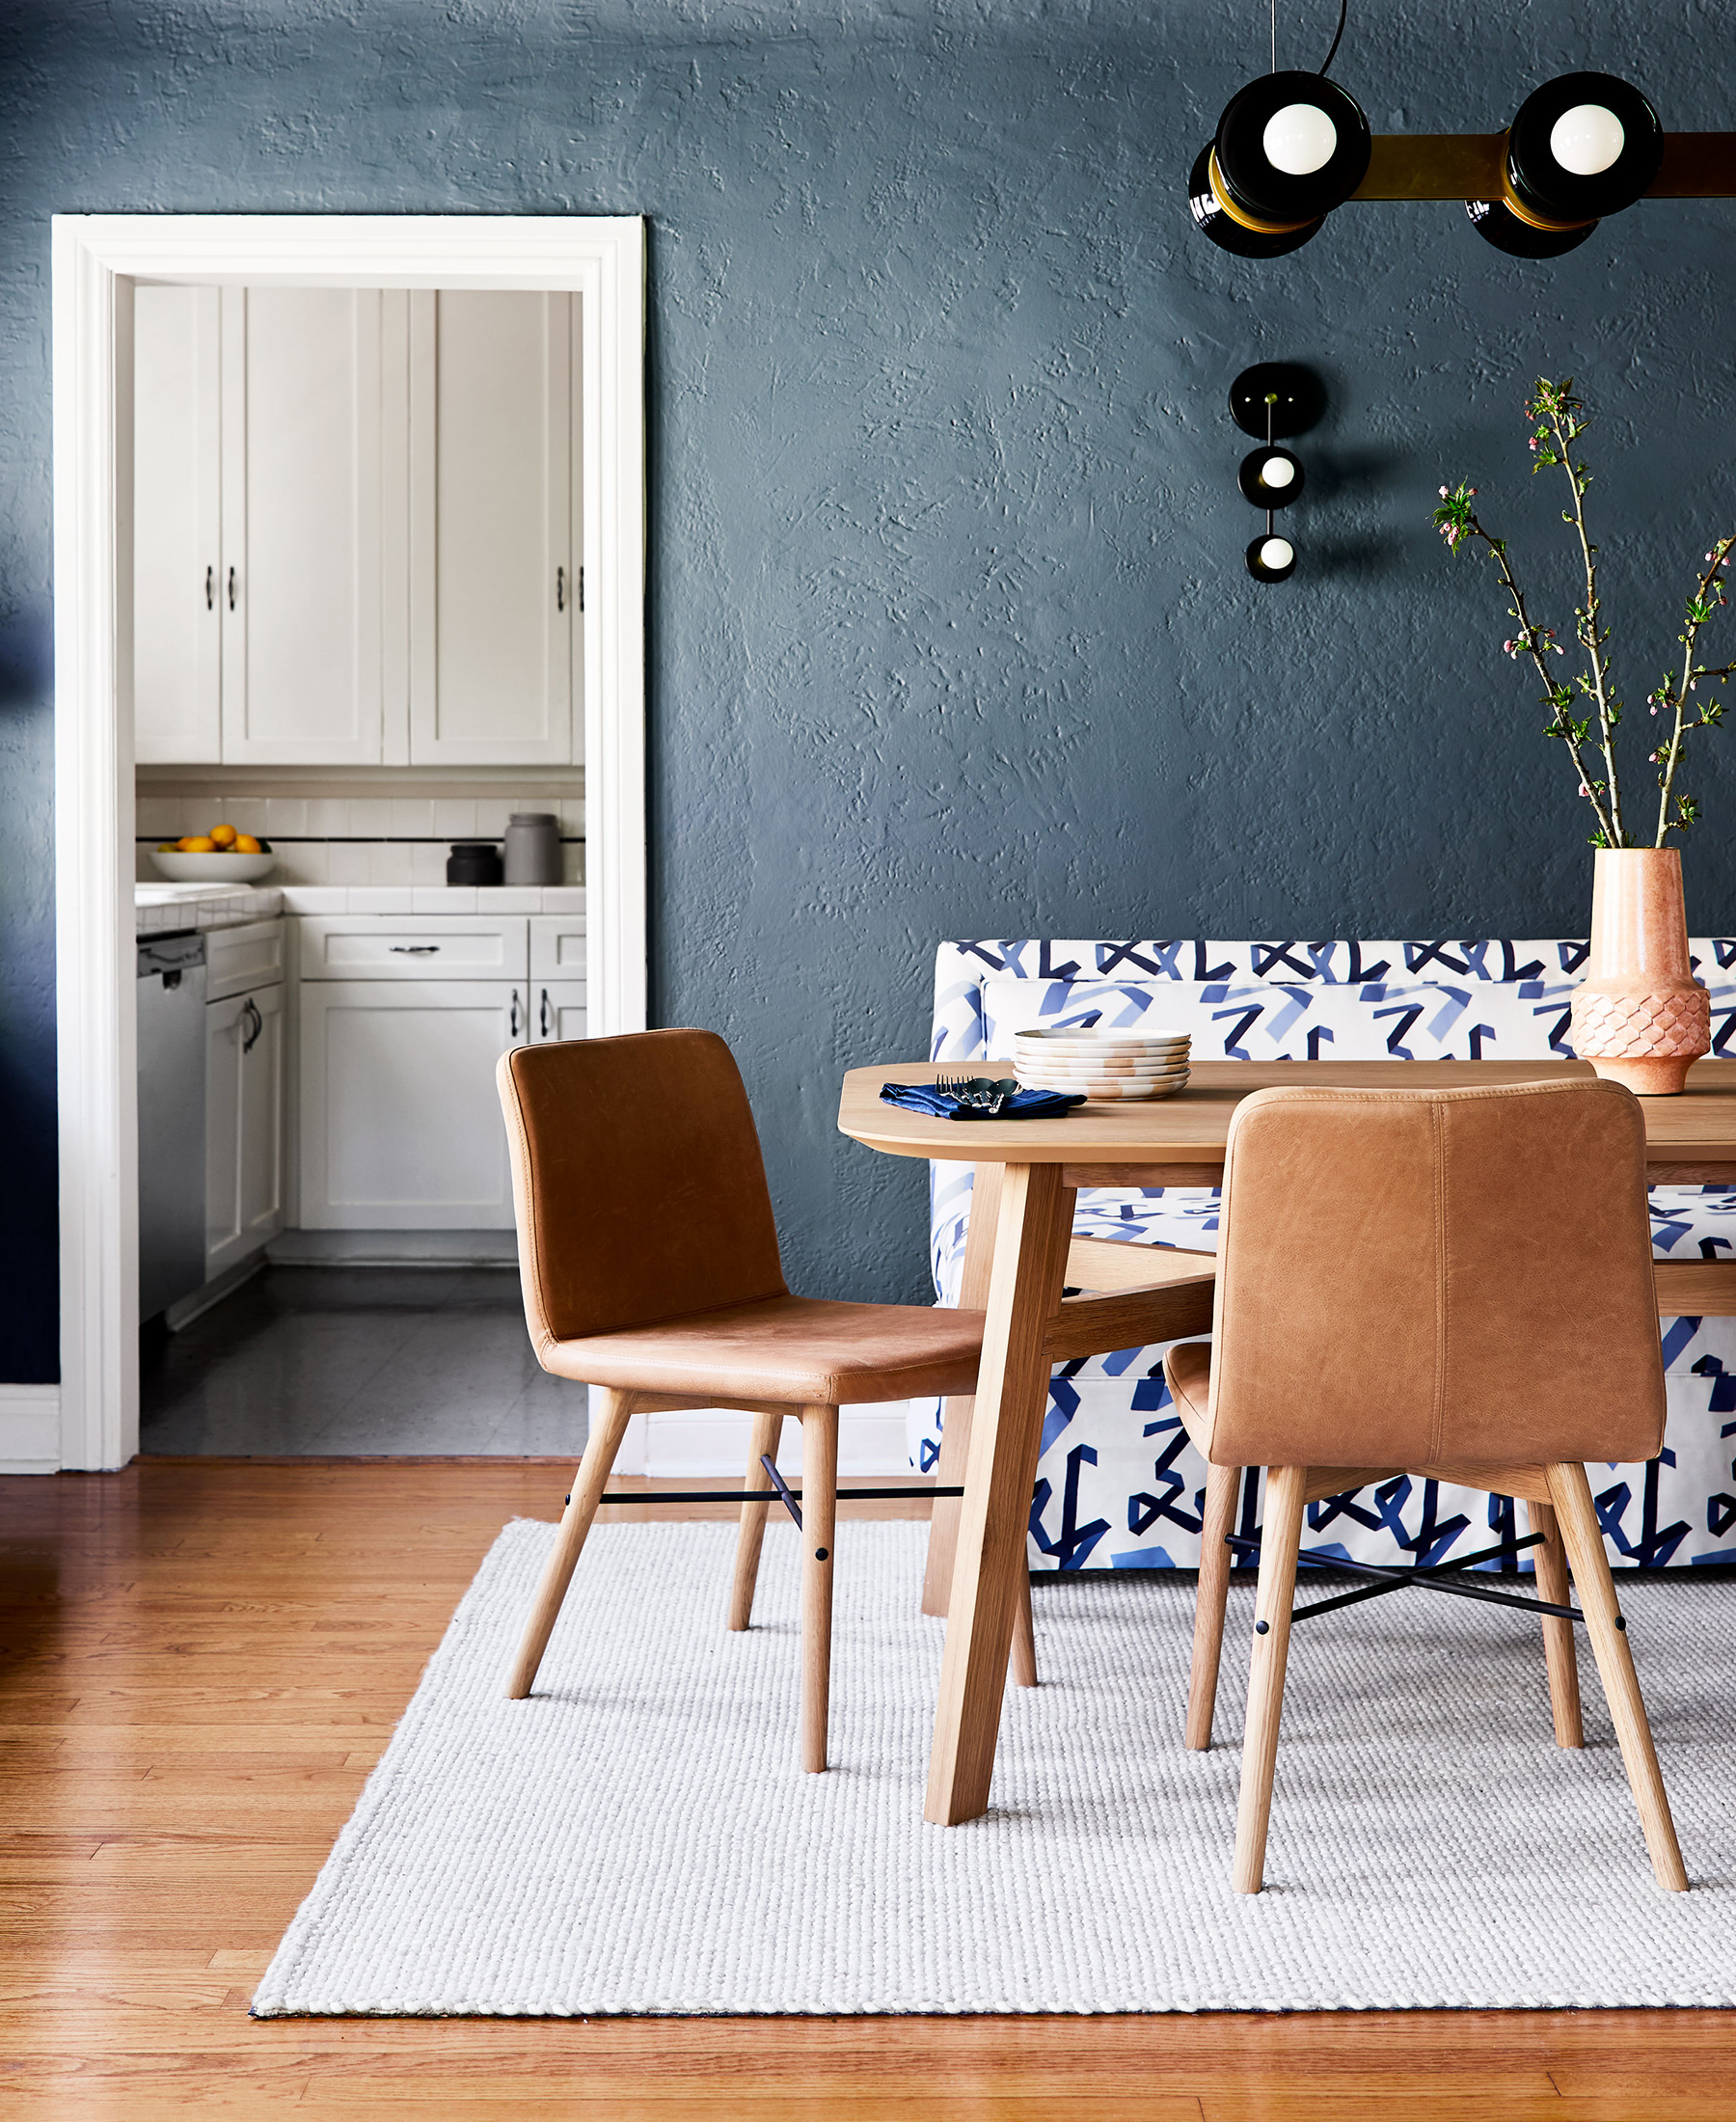 Dining room designed by Emily Henderson featuring the leather Kissa dining chair